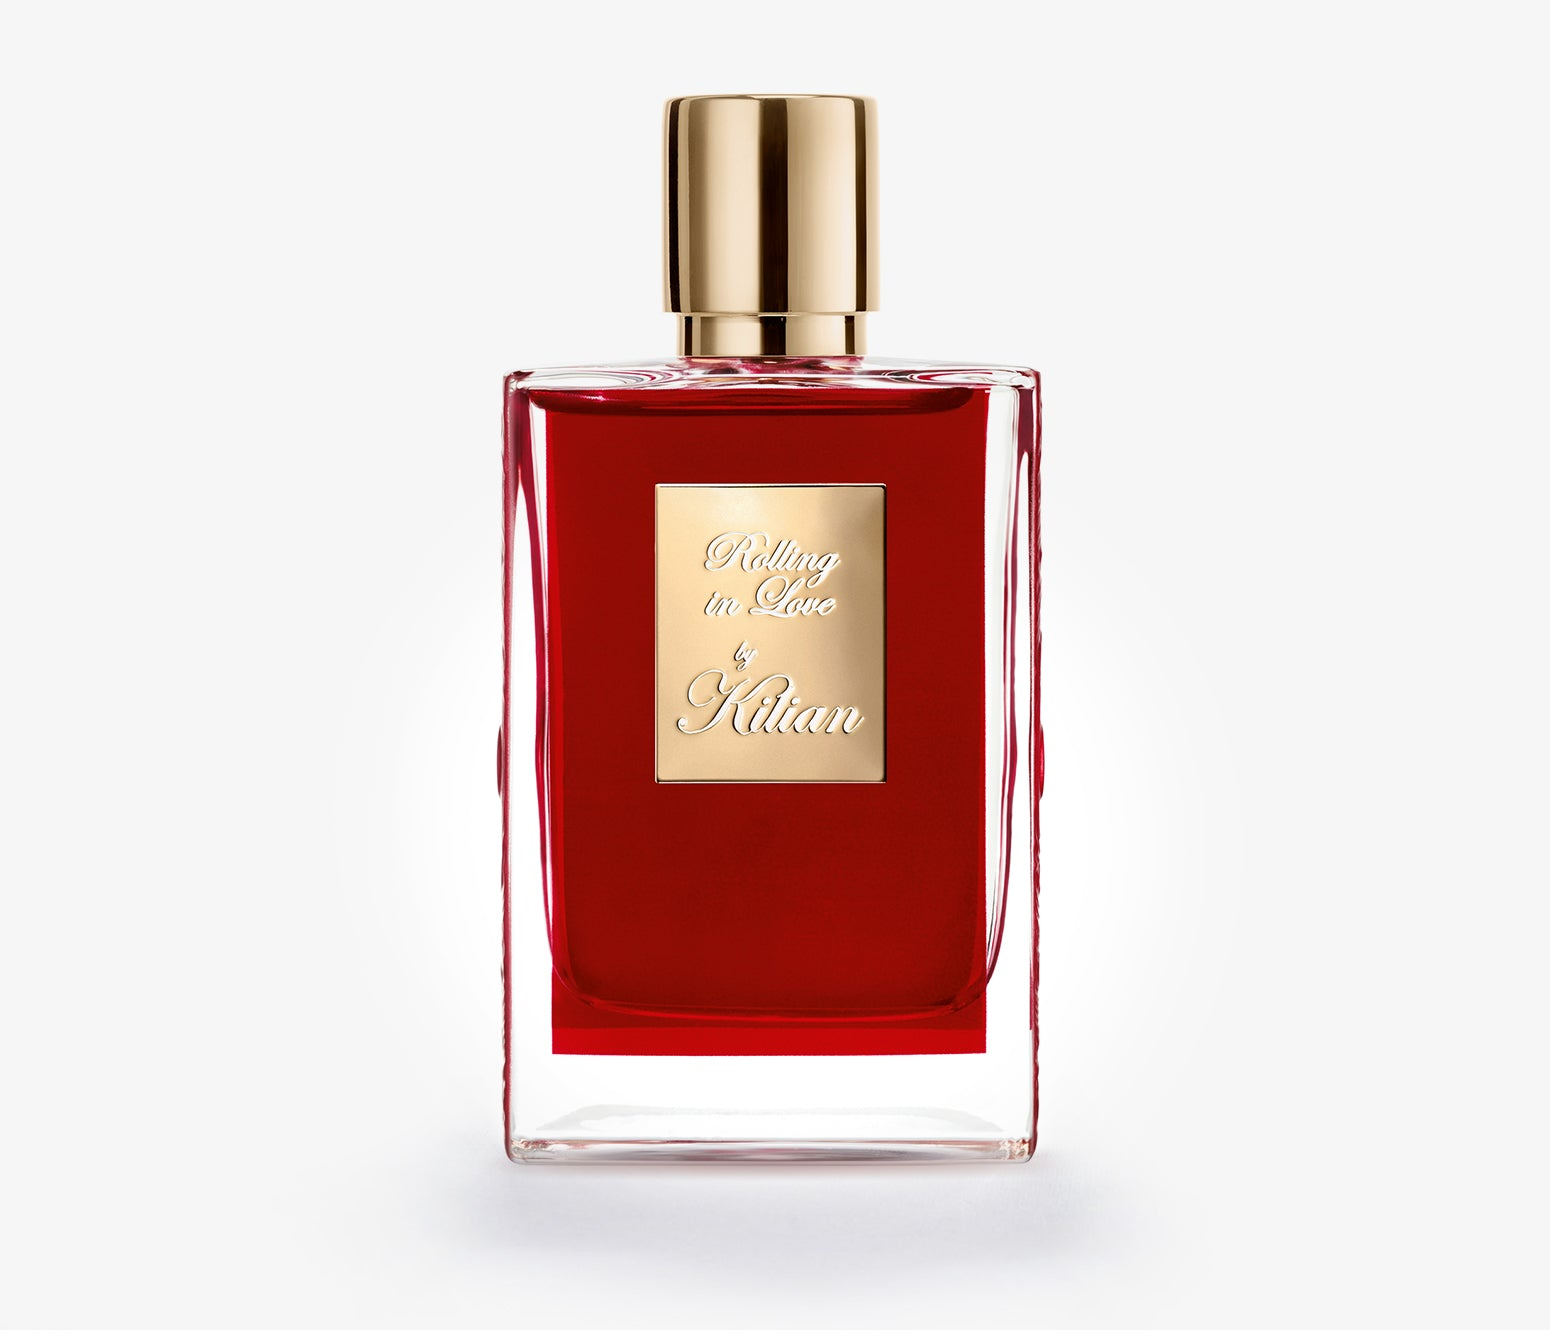 Kilian Paris - Rolling in Love - 50ml - QJB002 - product image - Fragrance - Les Senteurs